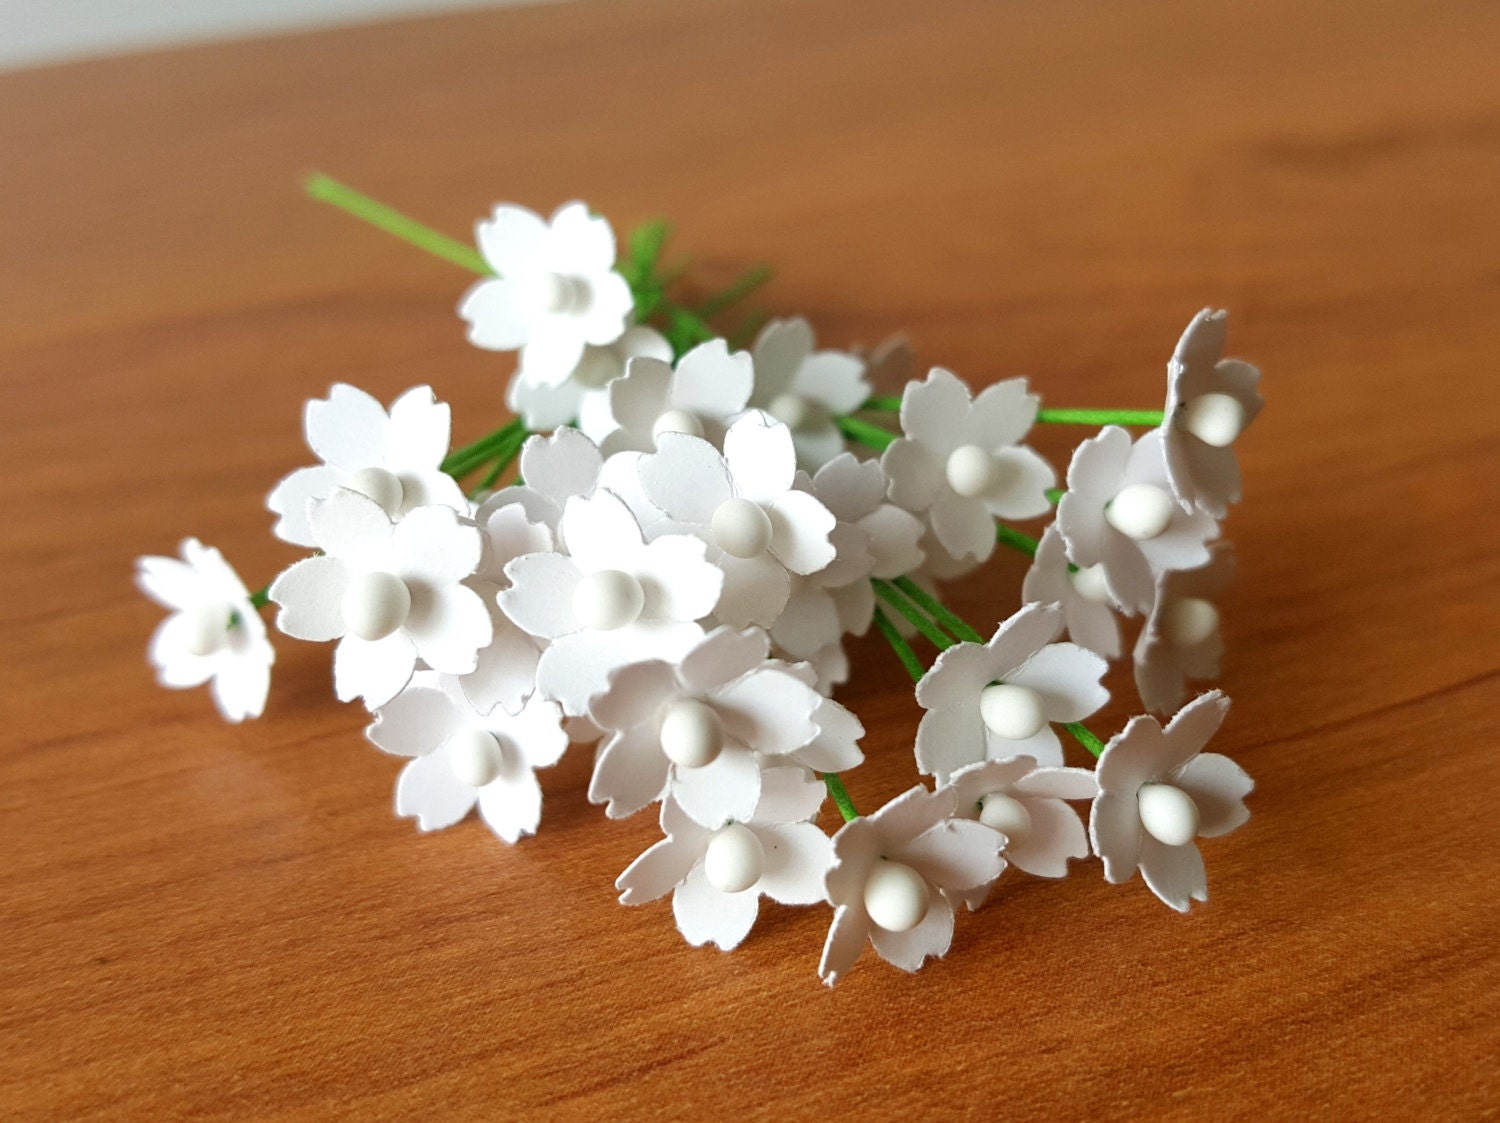 100 Miniature White Paper Flowers 5mm White Flowers